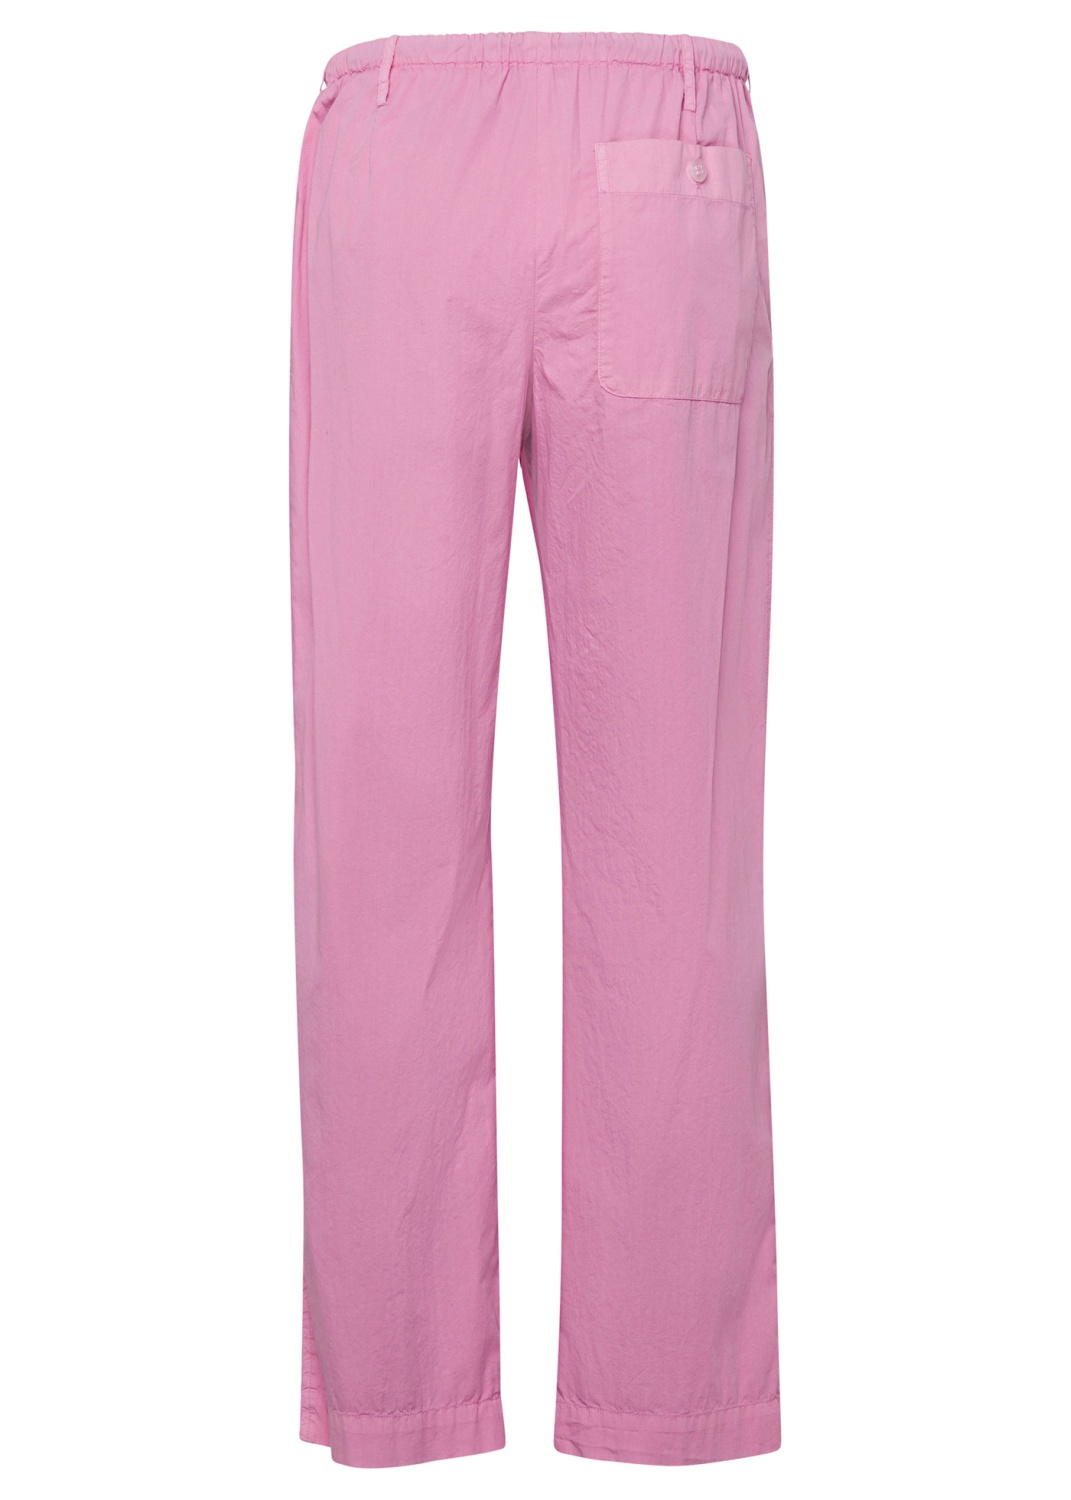 PENNY 2279 M.W. PANTS image number 1